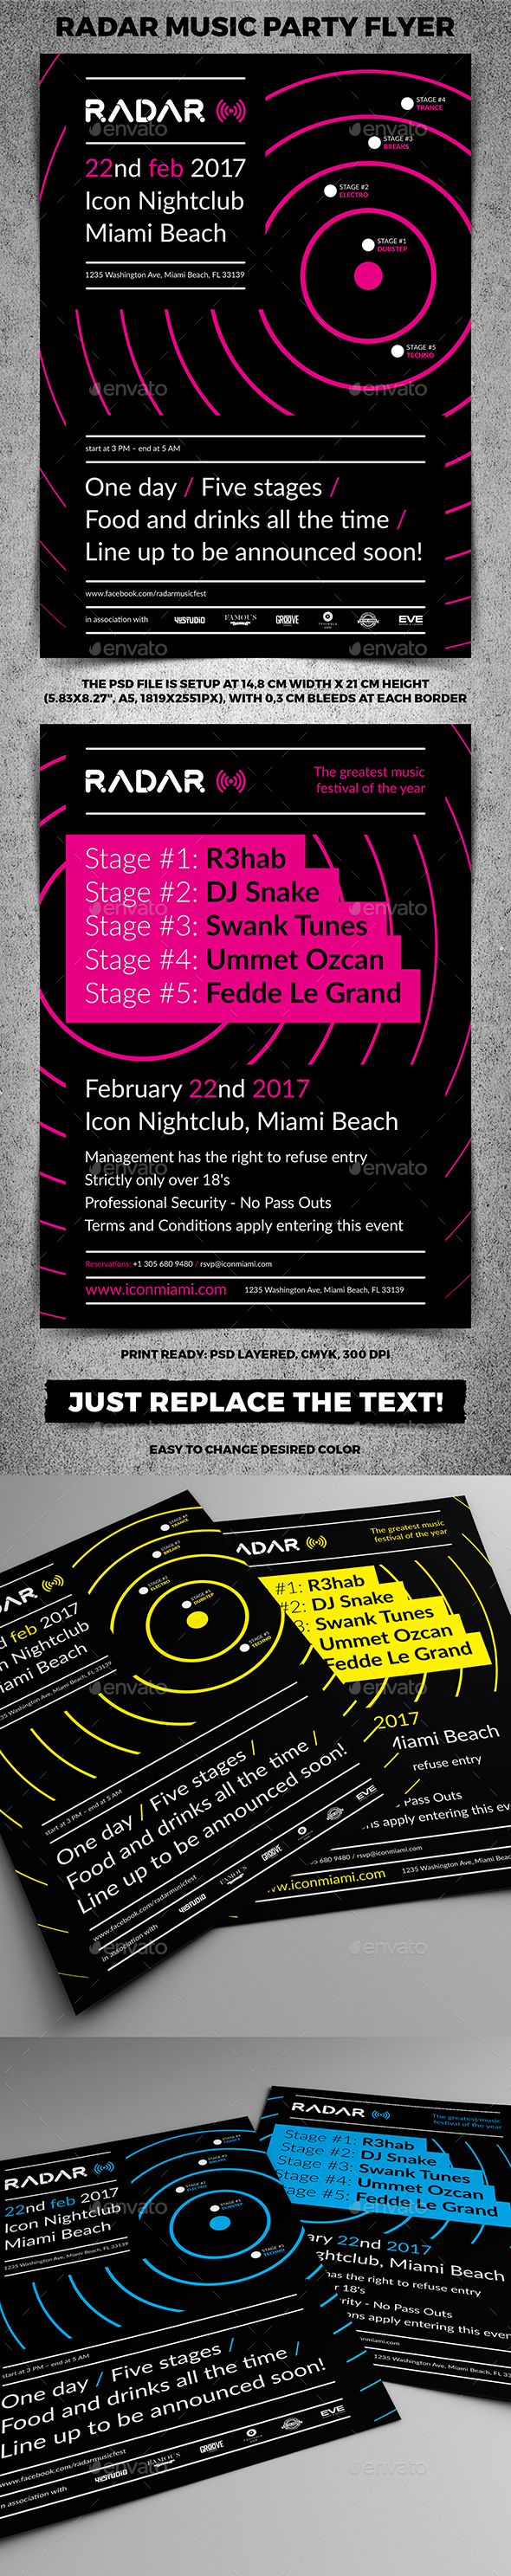 Radar Music Party Flyer - Clubs & Parties Events